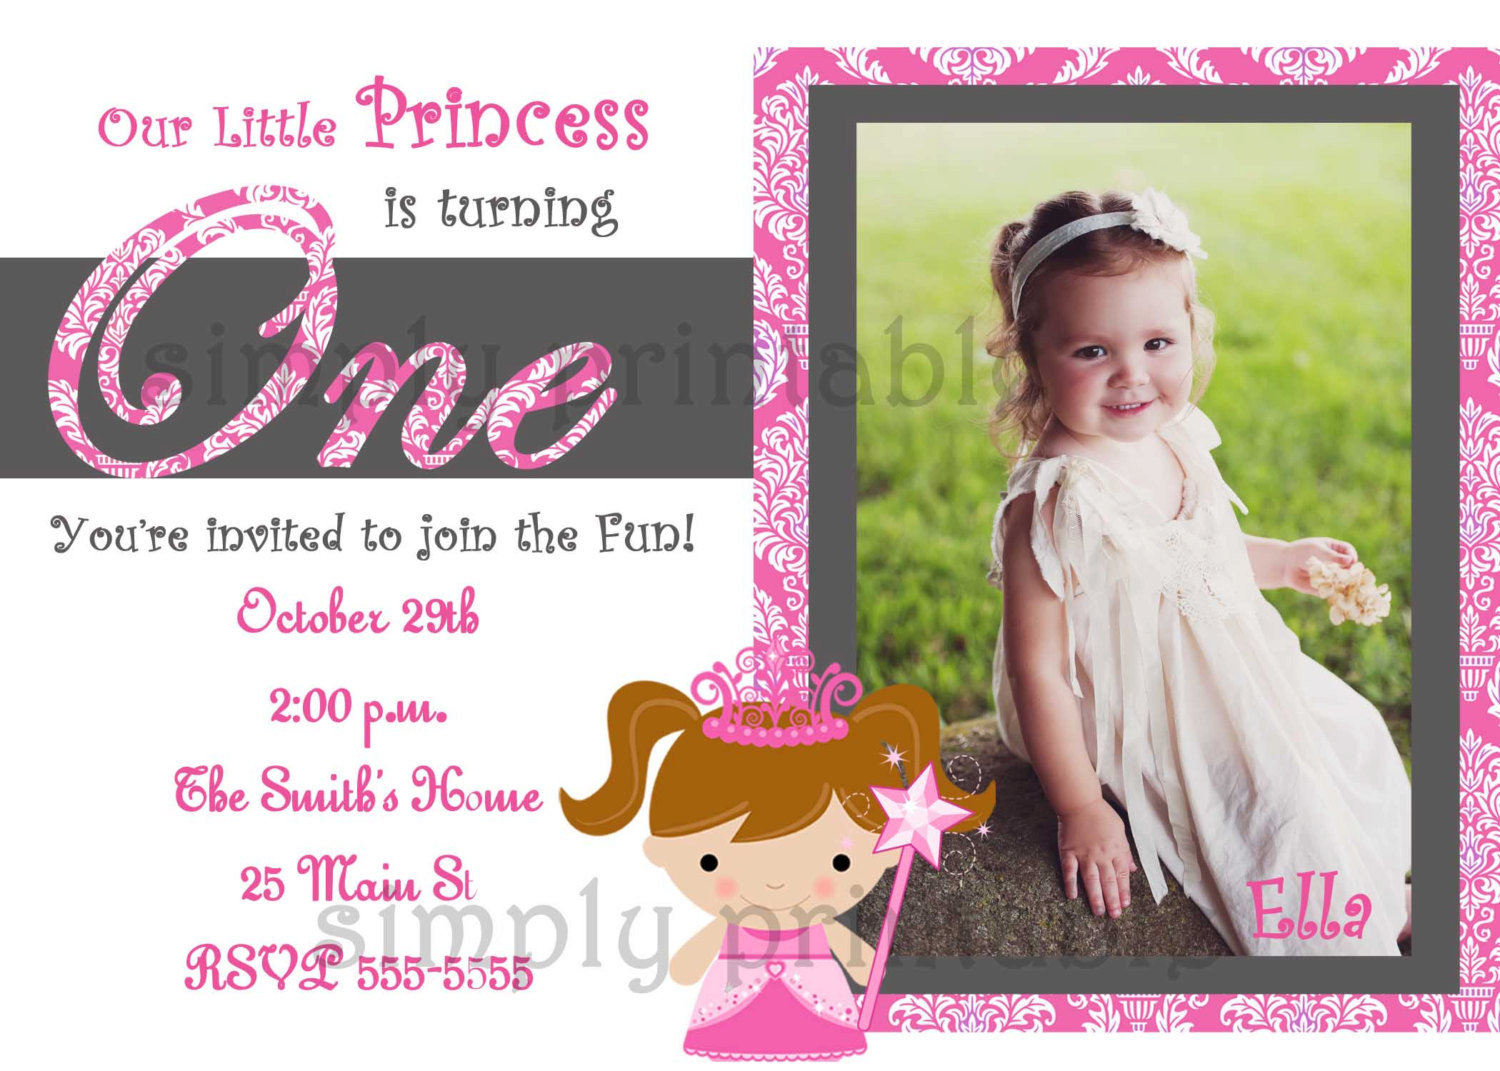 Best ideas about Girl First Birthday Invitations . Save or Pin Girls First Birthday Invitation for Princess Party Now.